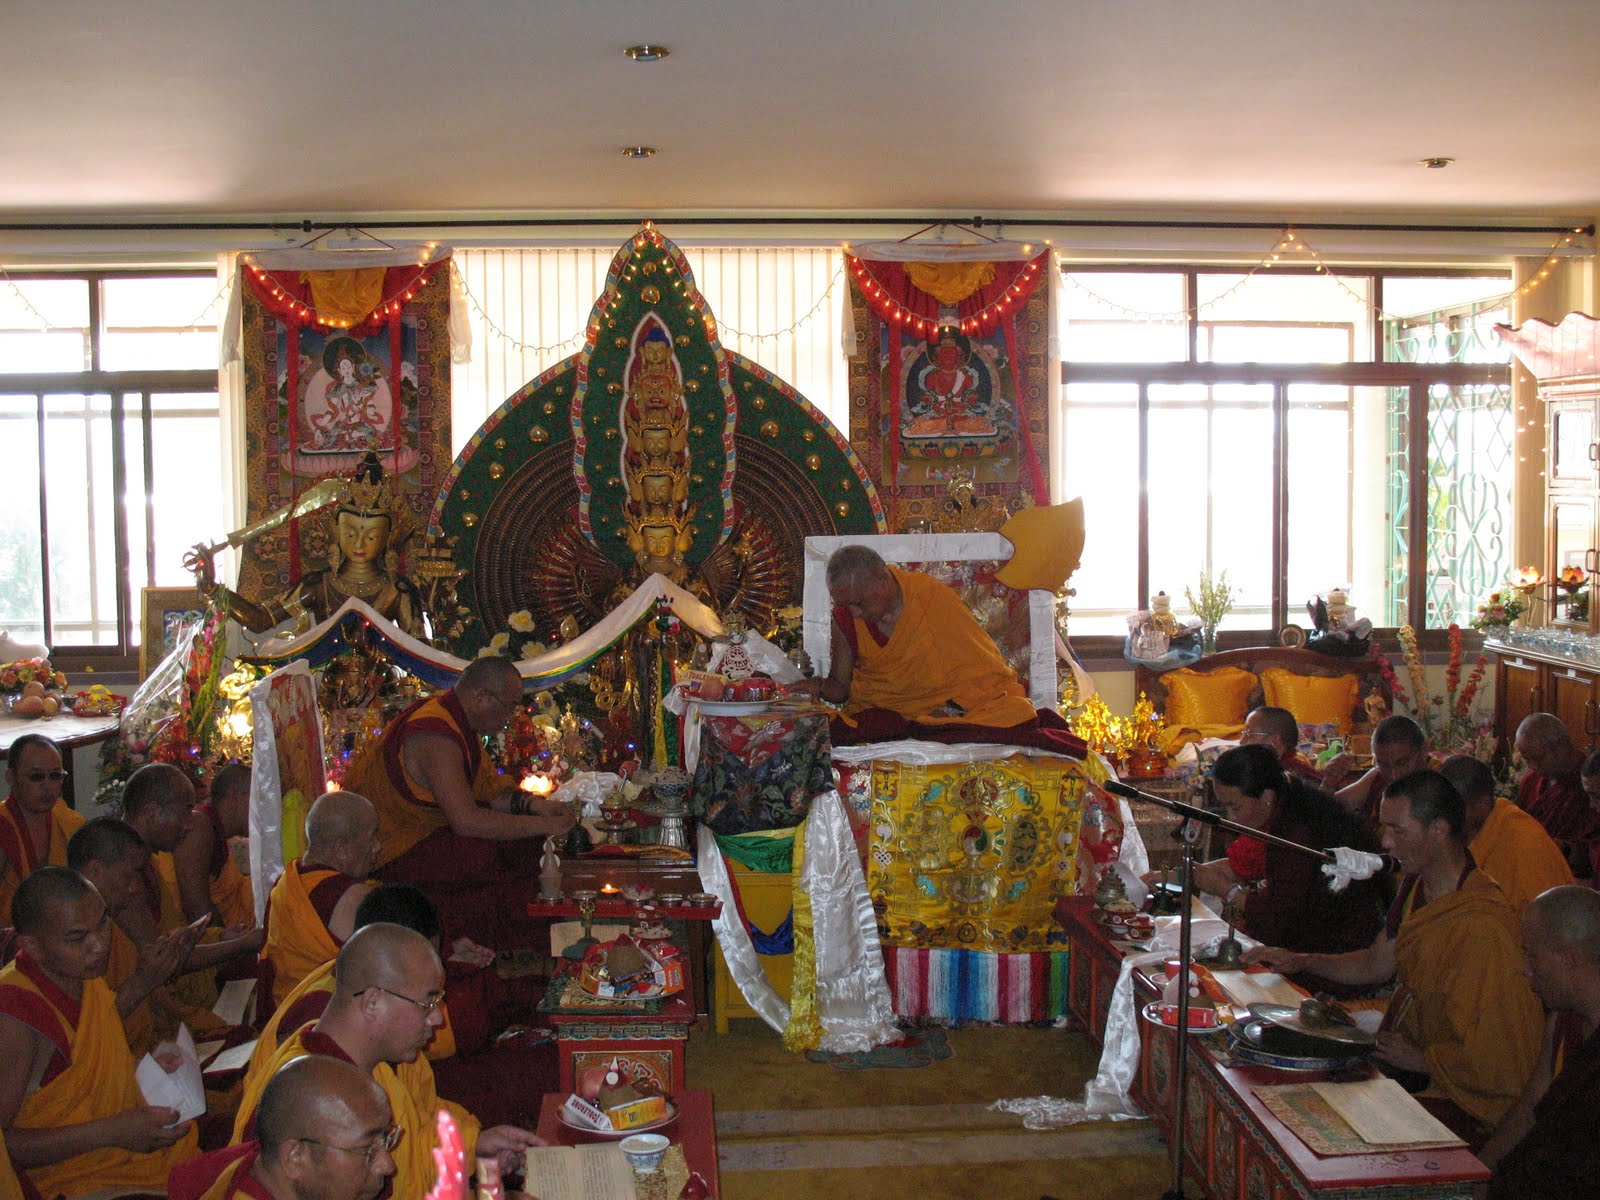 Dagri Rinpoche, Lama Lhundrup, Khadro-la, geshes and monks during special long life puja offered to Lama Zopa Rinpoche, Kopan Monastery, June 2009.